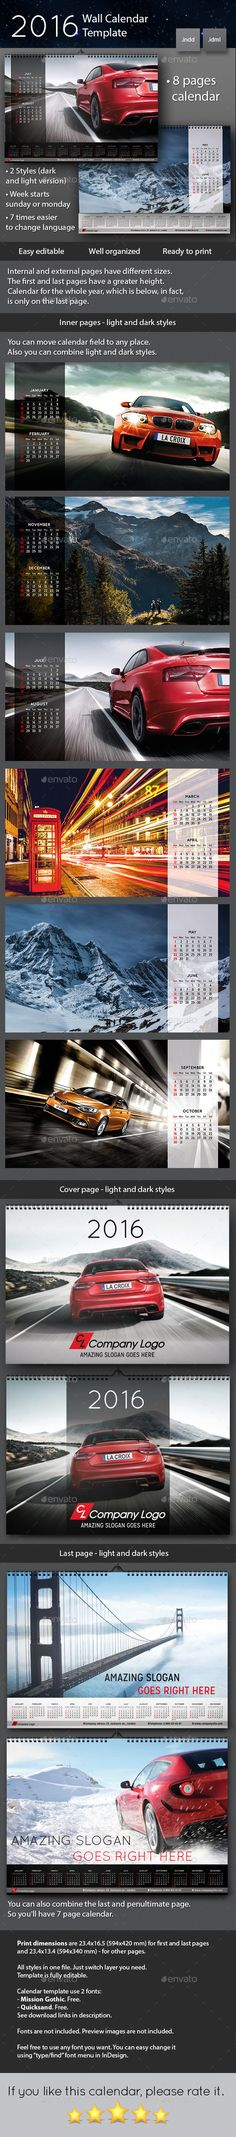 2016 Wall Calendar Template #design Download: http://graphicriver.net/item/2016-wall-calendar-/12065112?ref=ksioks